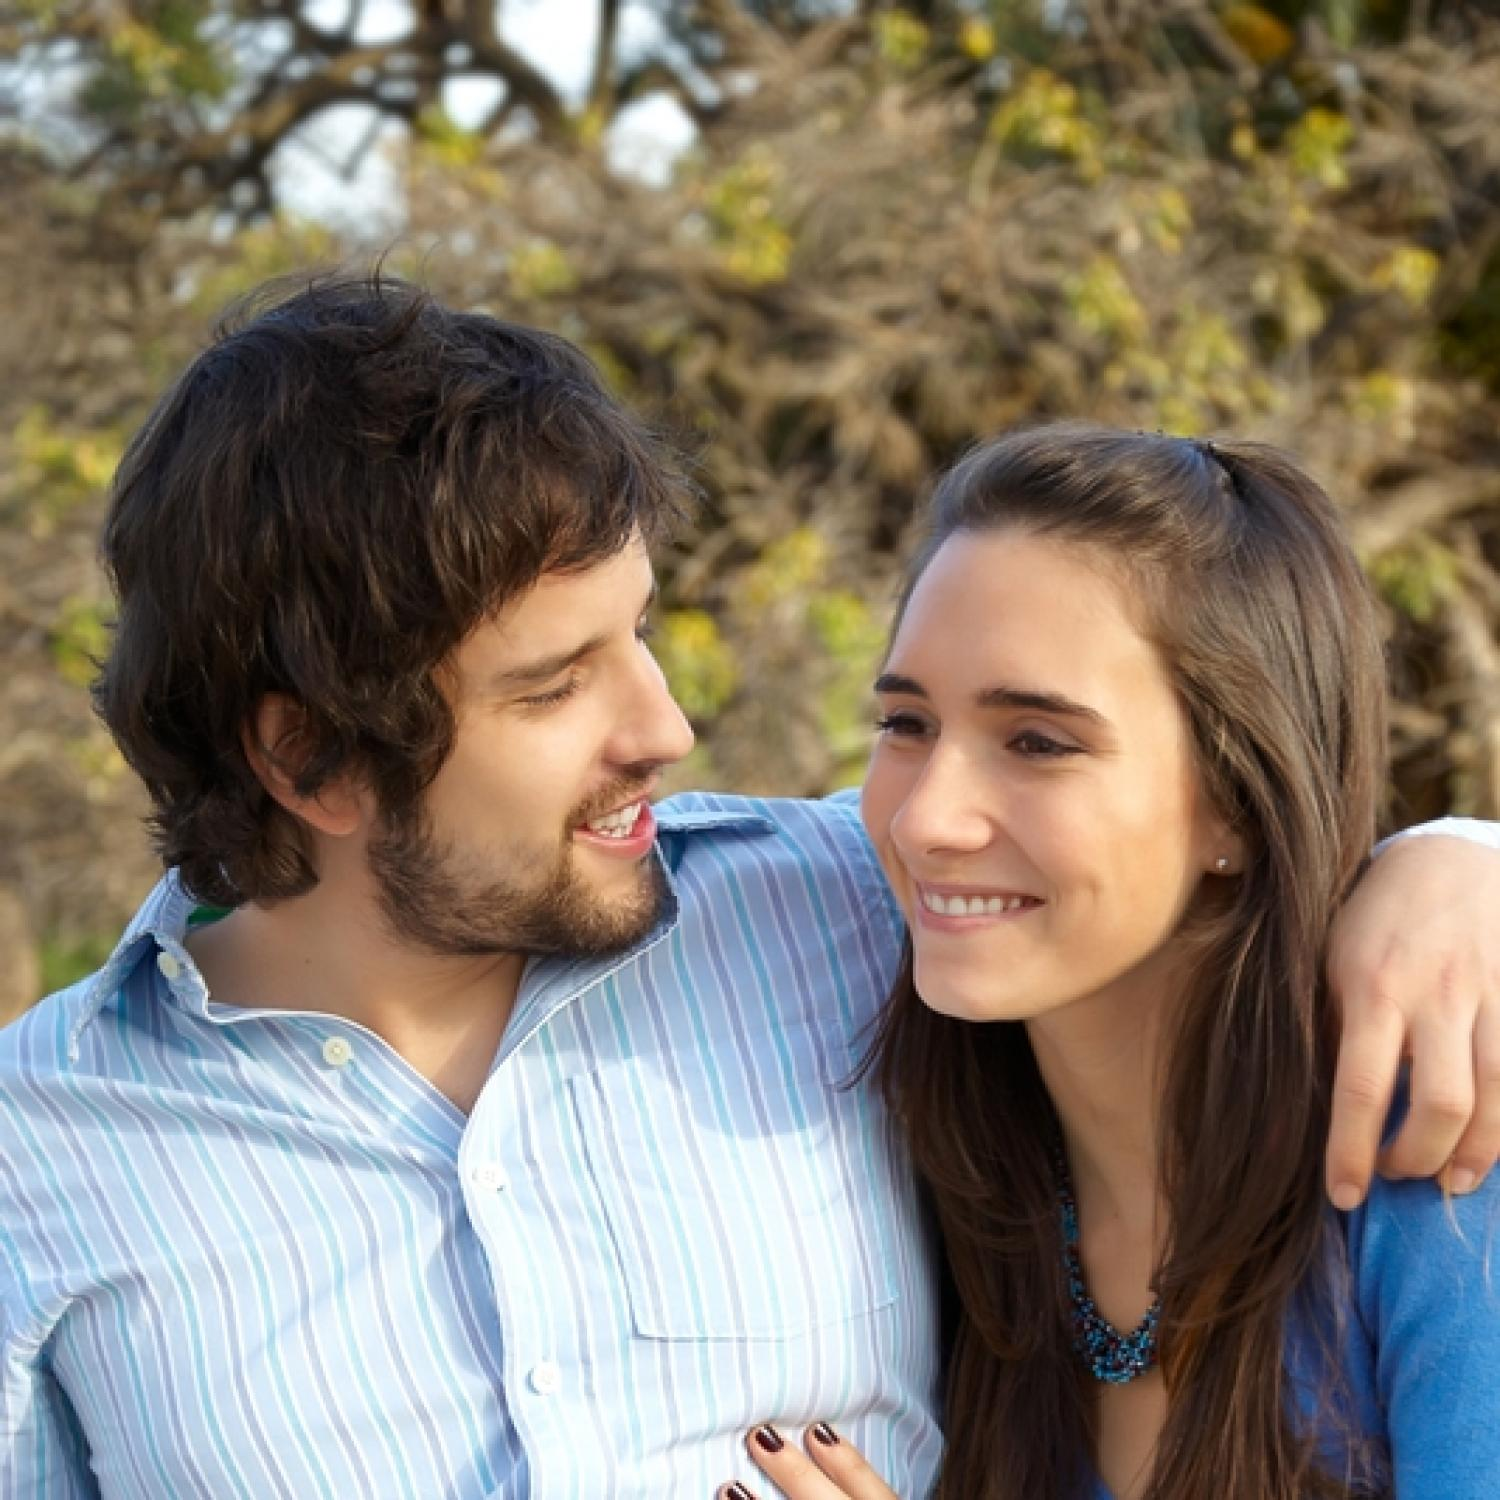 How to become pregnant if the husband does not want to